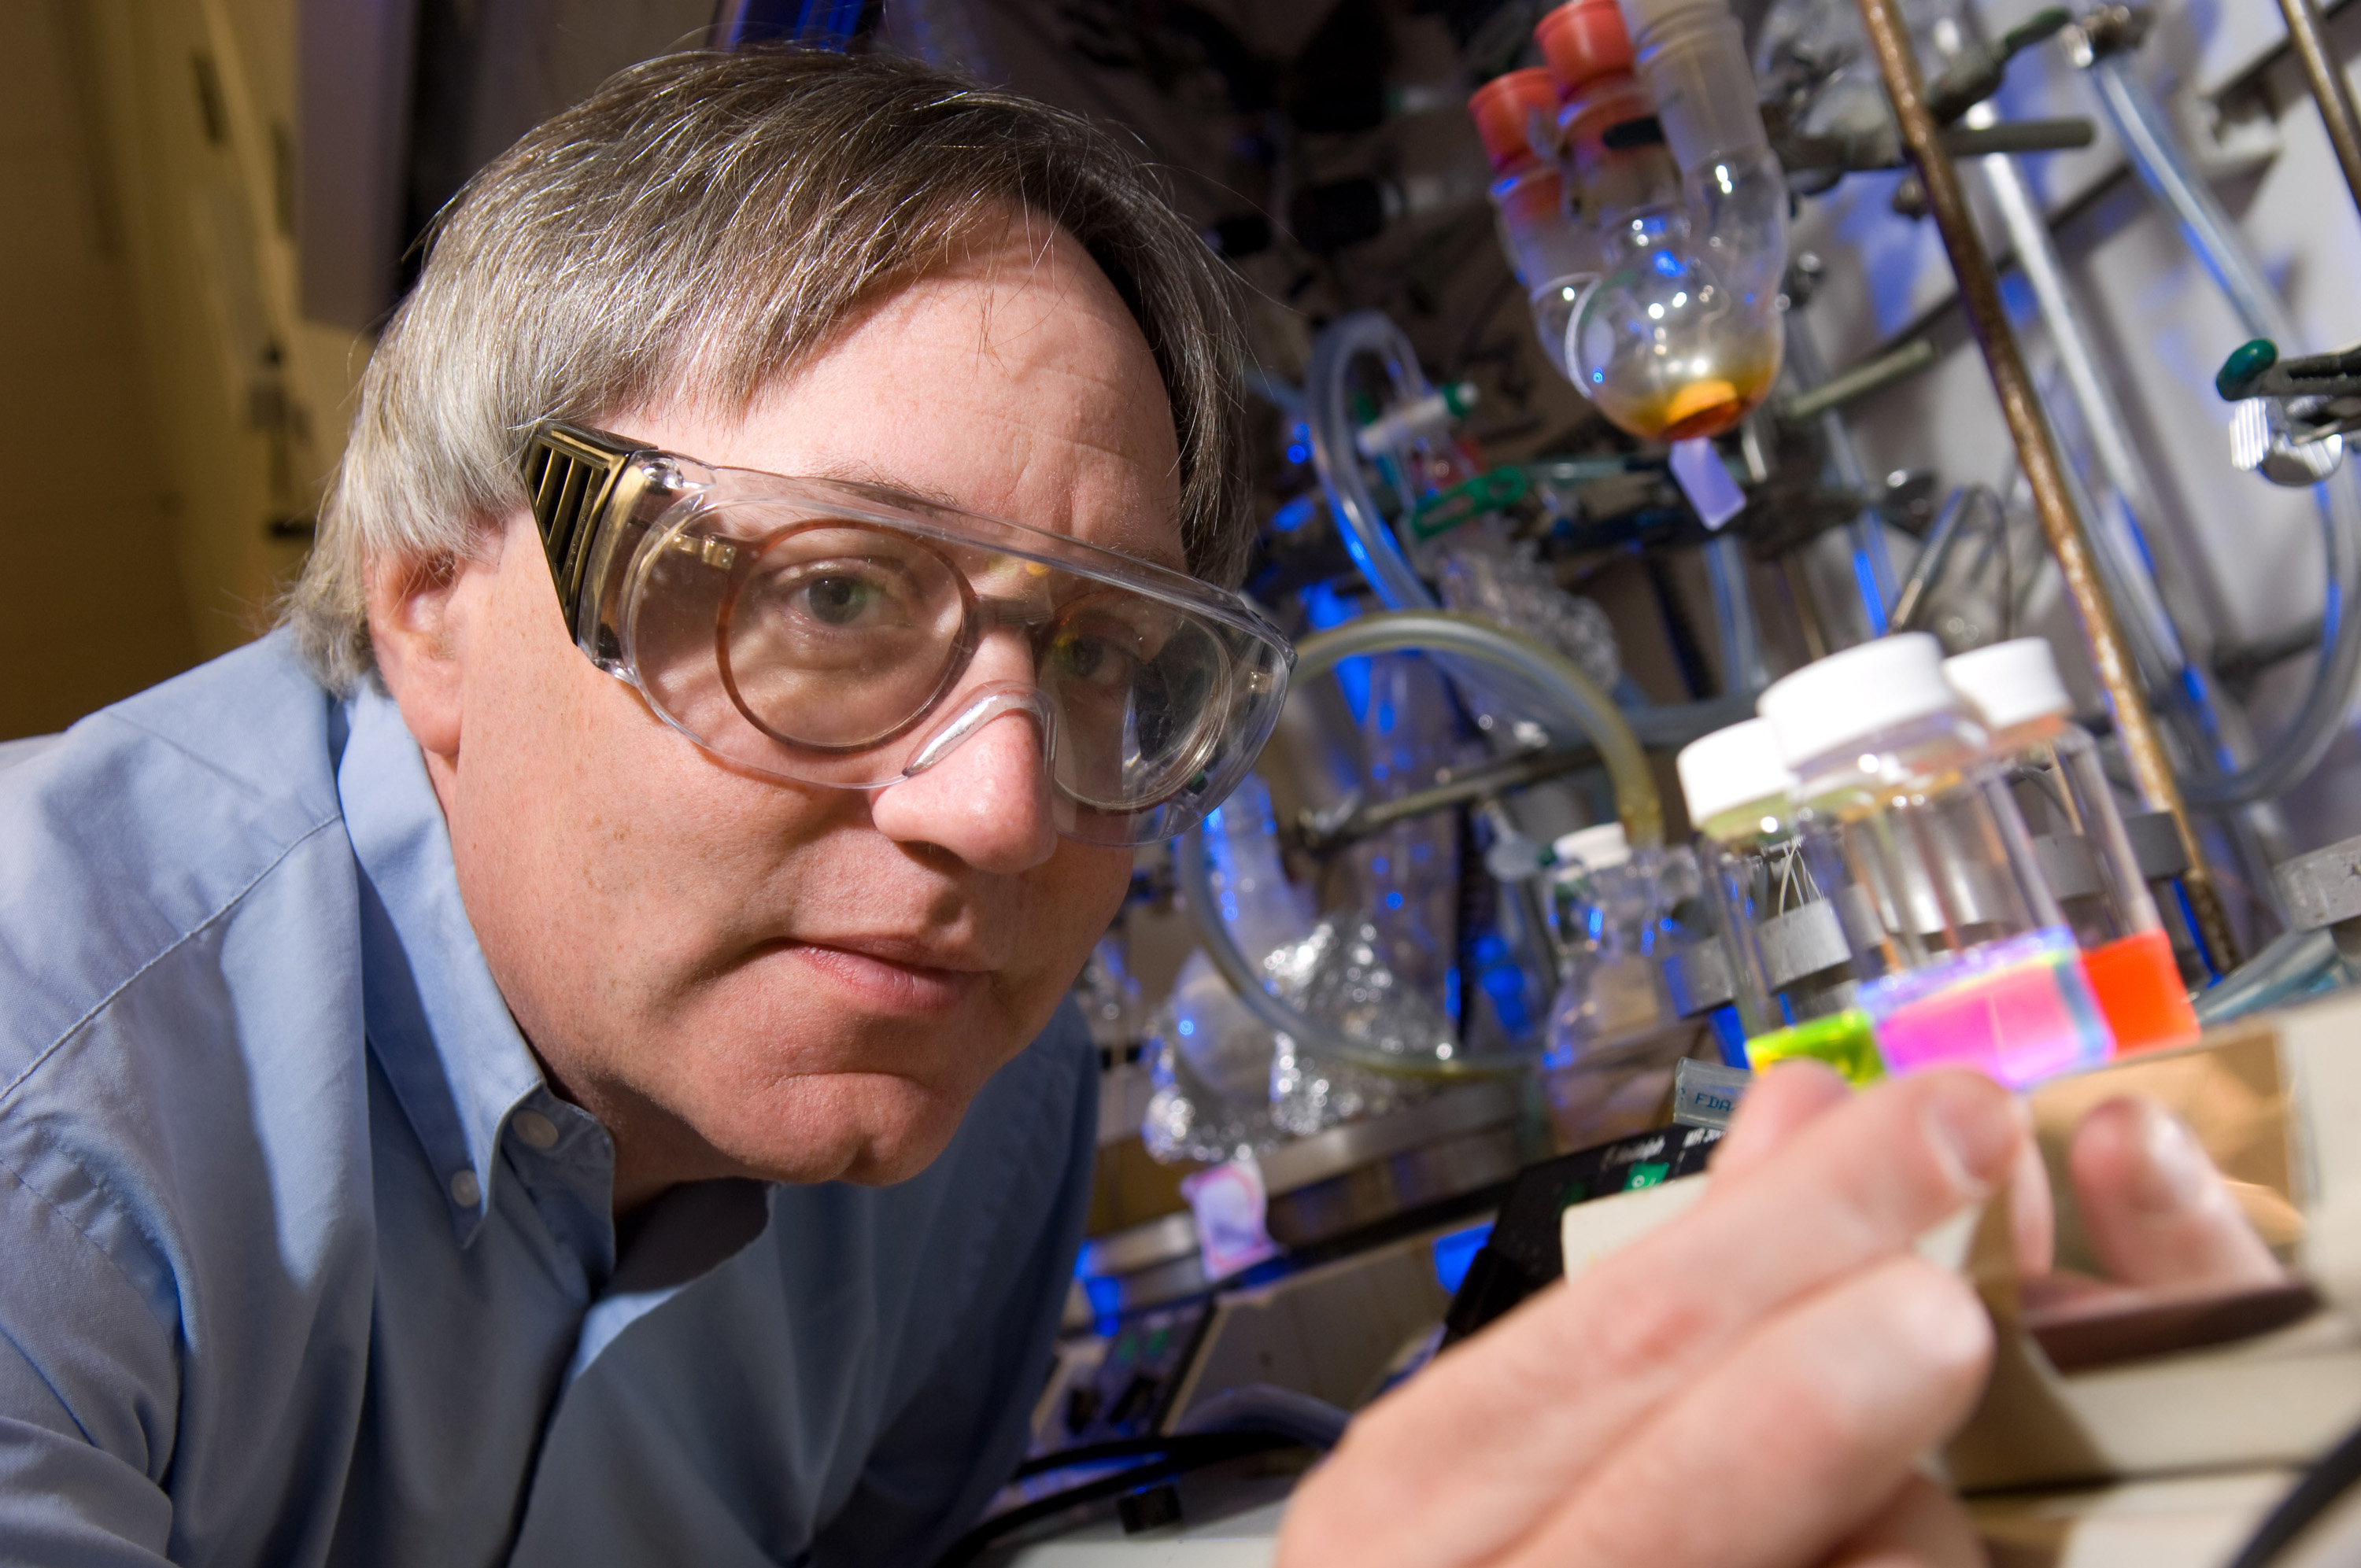 Seth Marder Regents Professor, School of Chemistry and Biochemistry